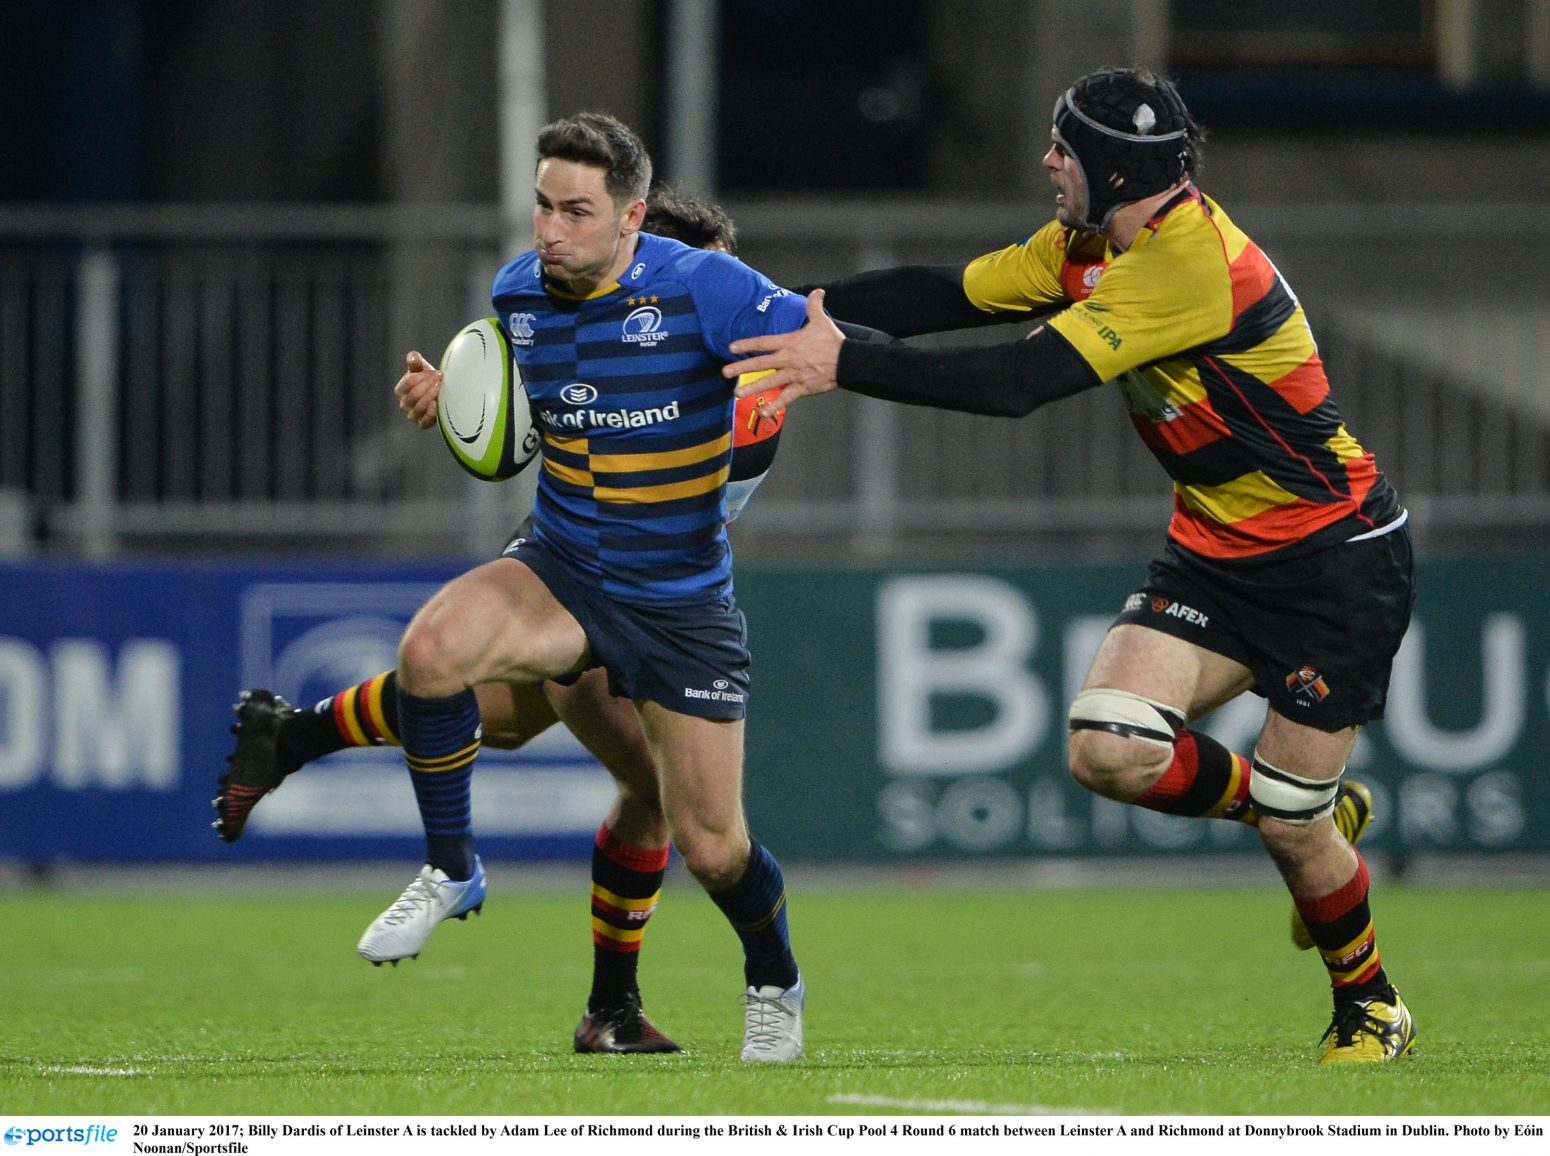 20 January 2017; Billy Dardis of Leinster A is tackled by Adam Lee of Richmond during the British & Irish Cup Pool 4 Round 6 match between Leinster A and Richmond at Donnybrook Stadium in Dublin. Photo by Eóin Noonan/Sportsfile